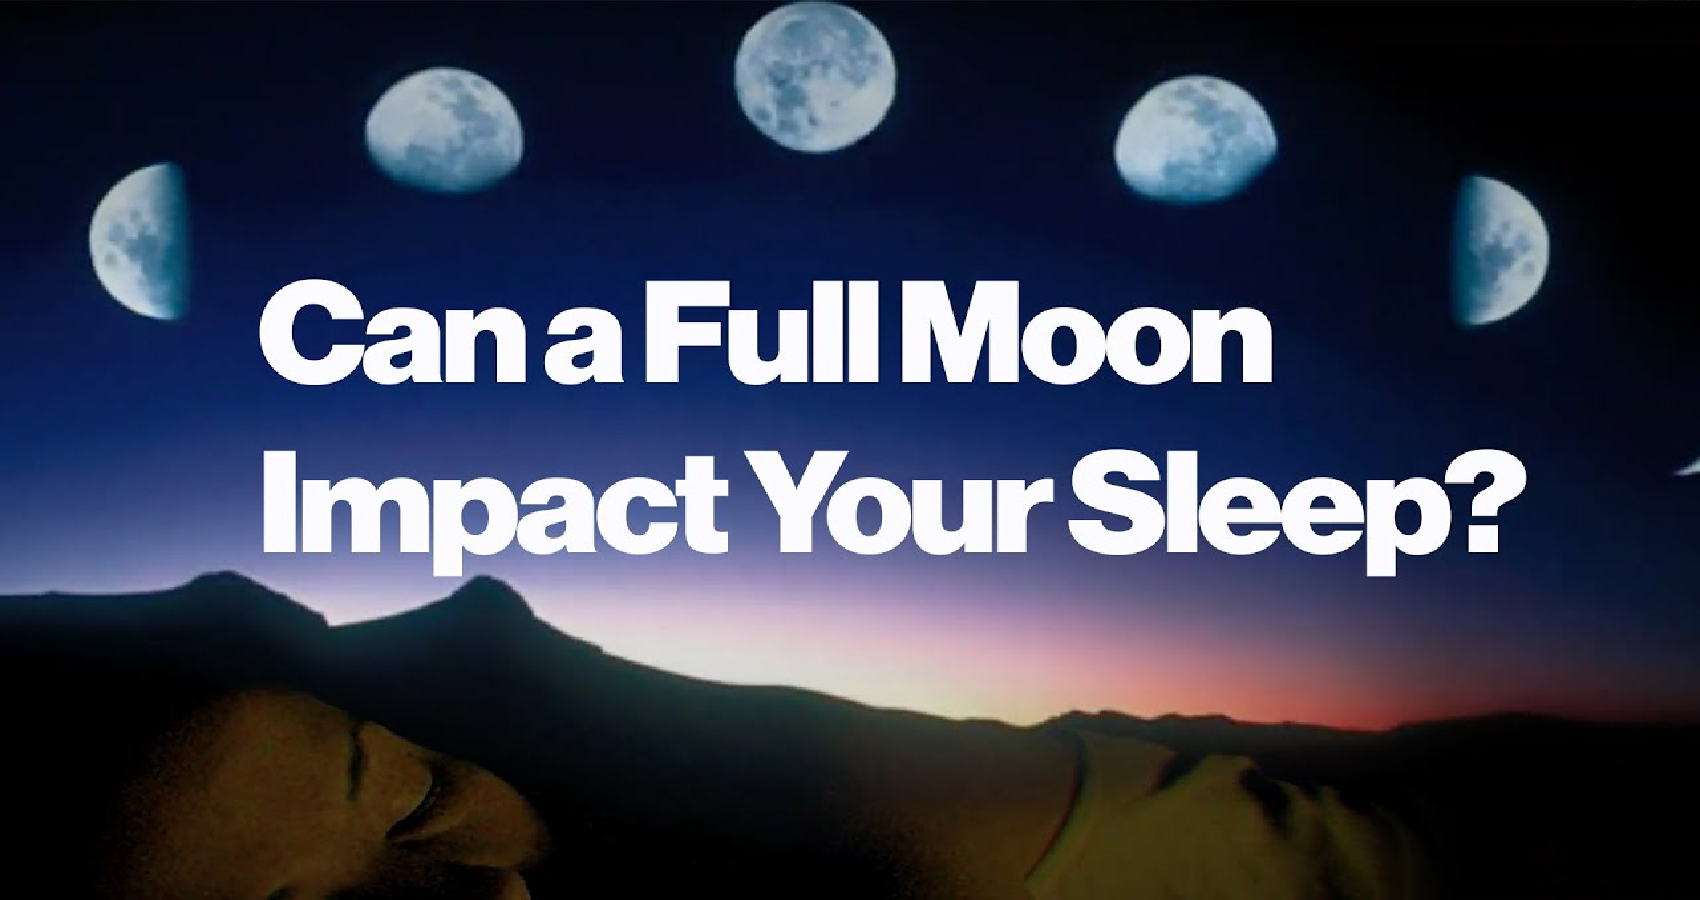 Does Moon Impact Your Sleep?